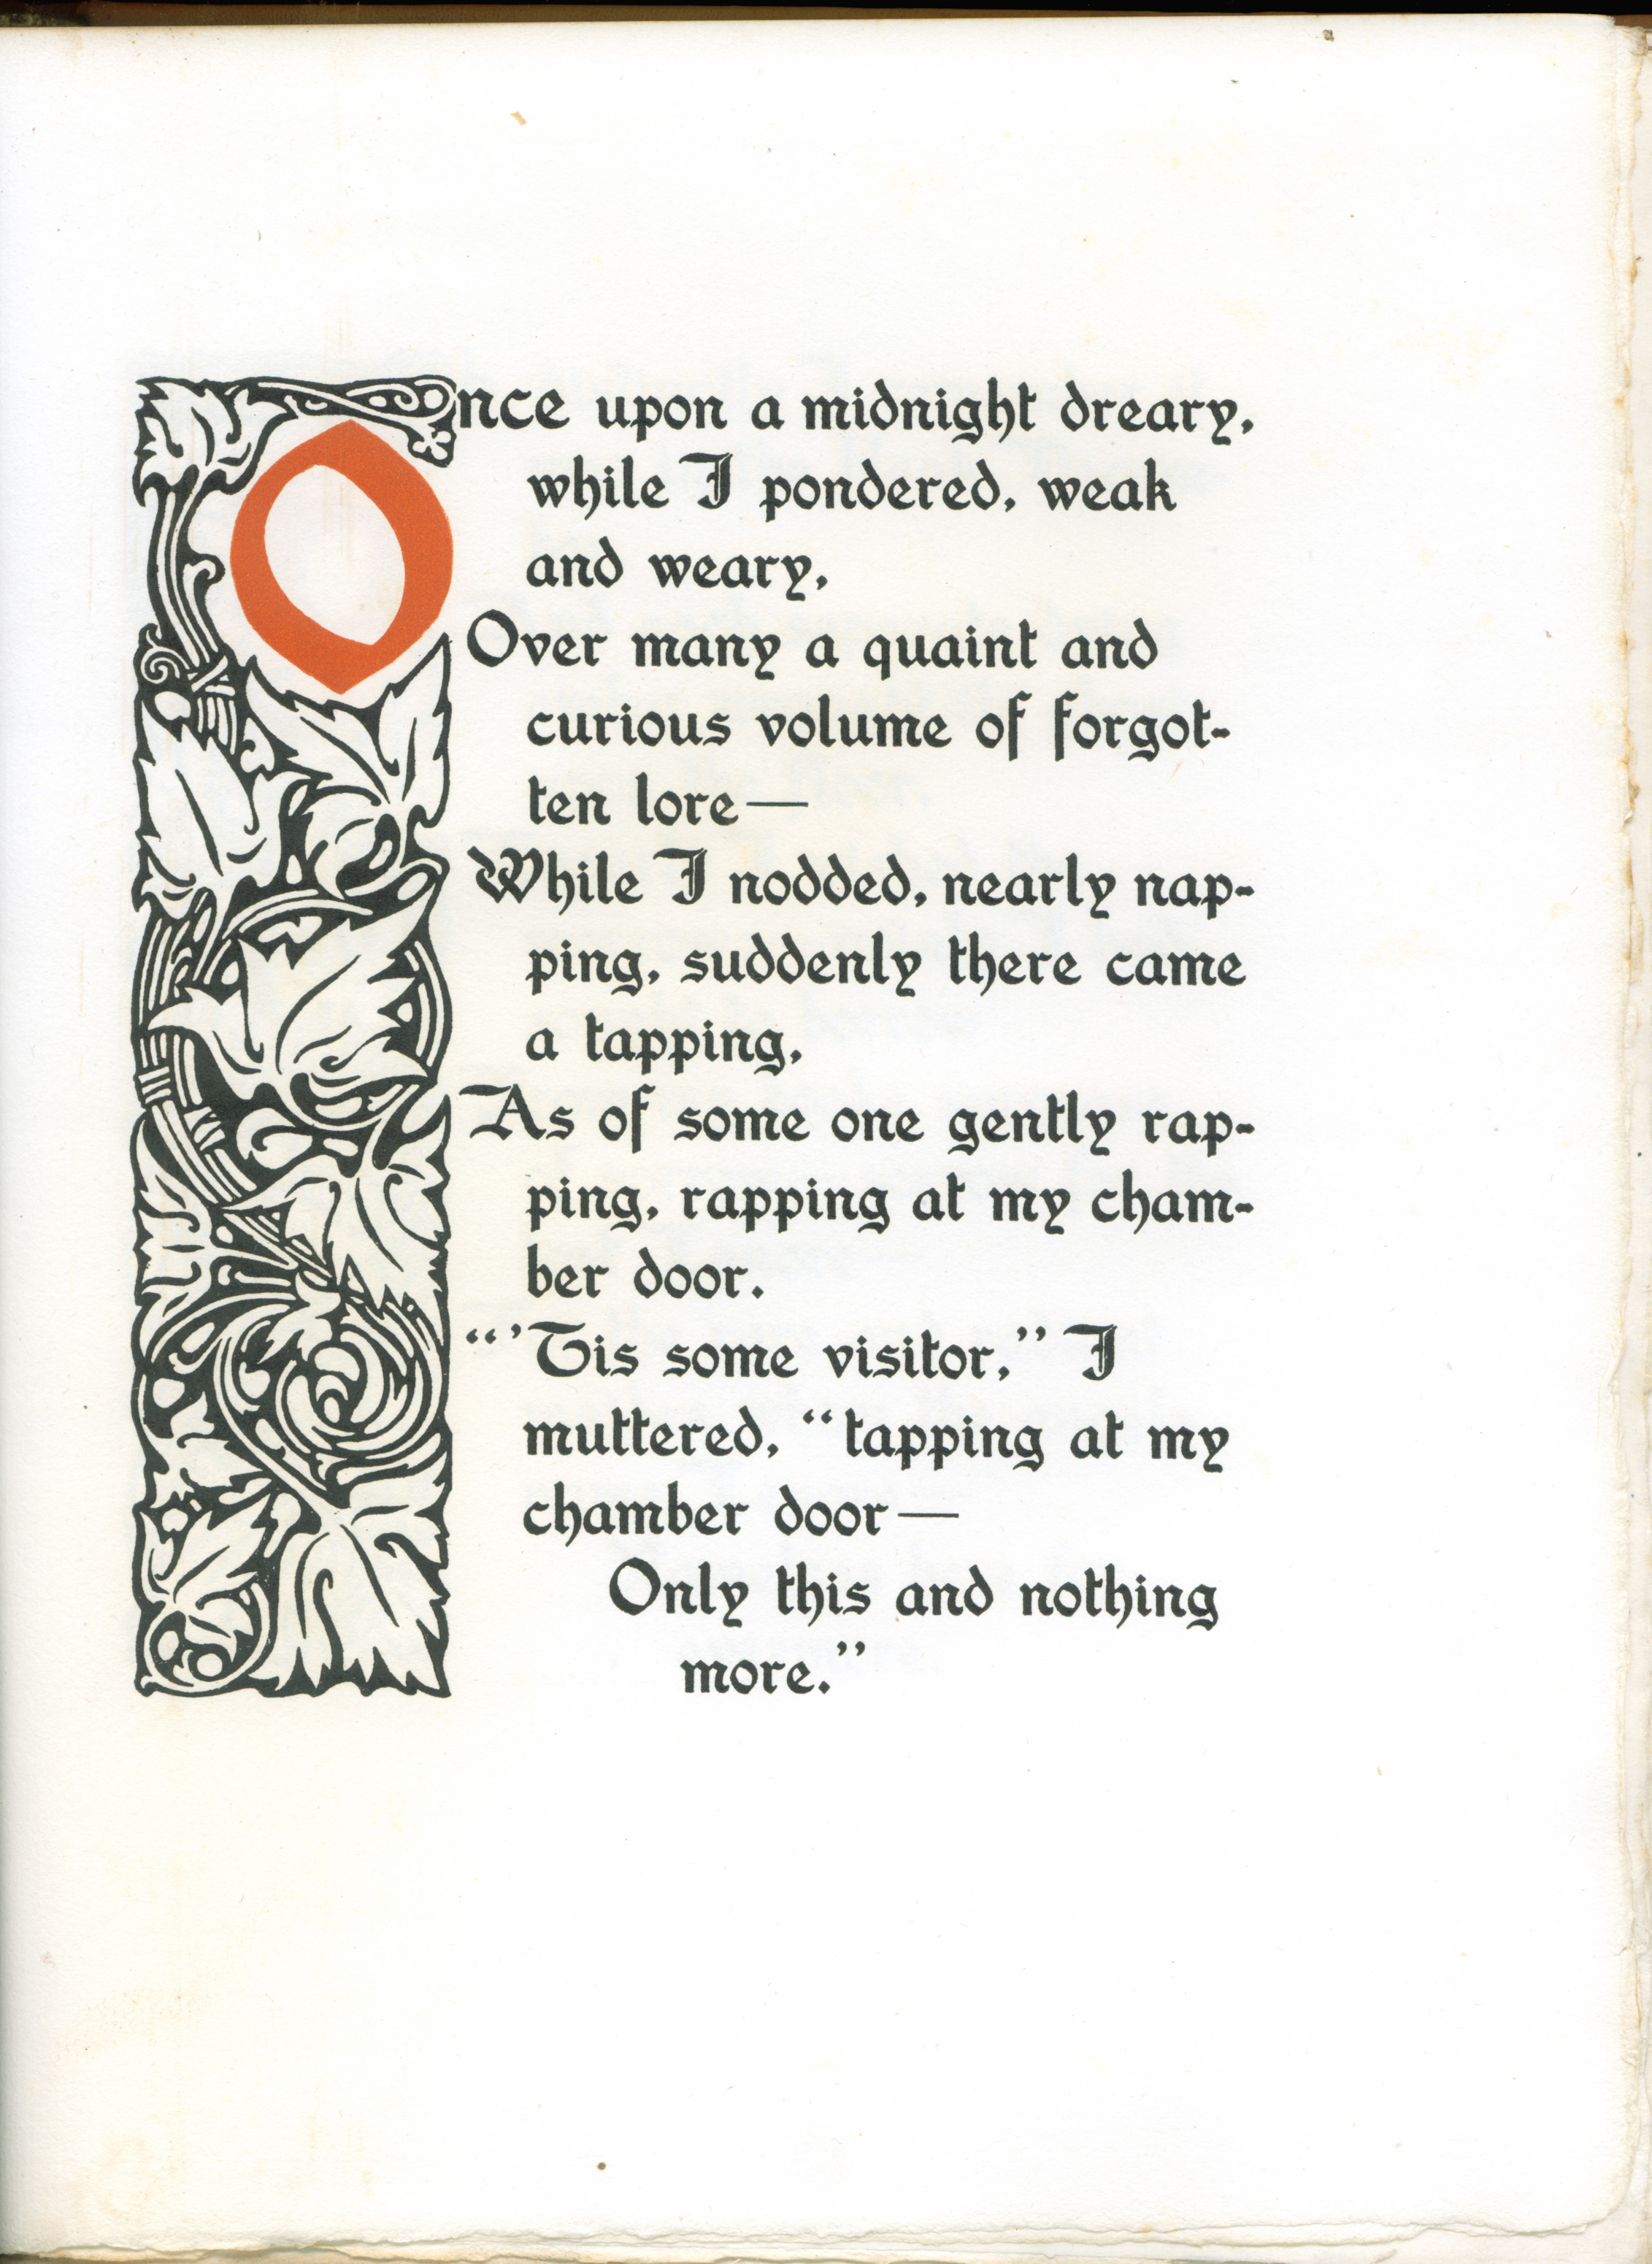 paul elder co the raven  first page of the poem